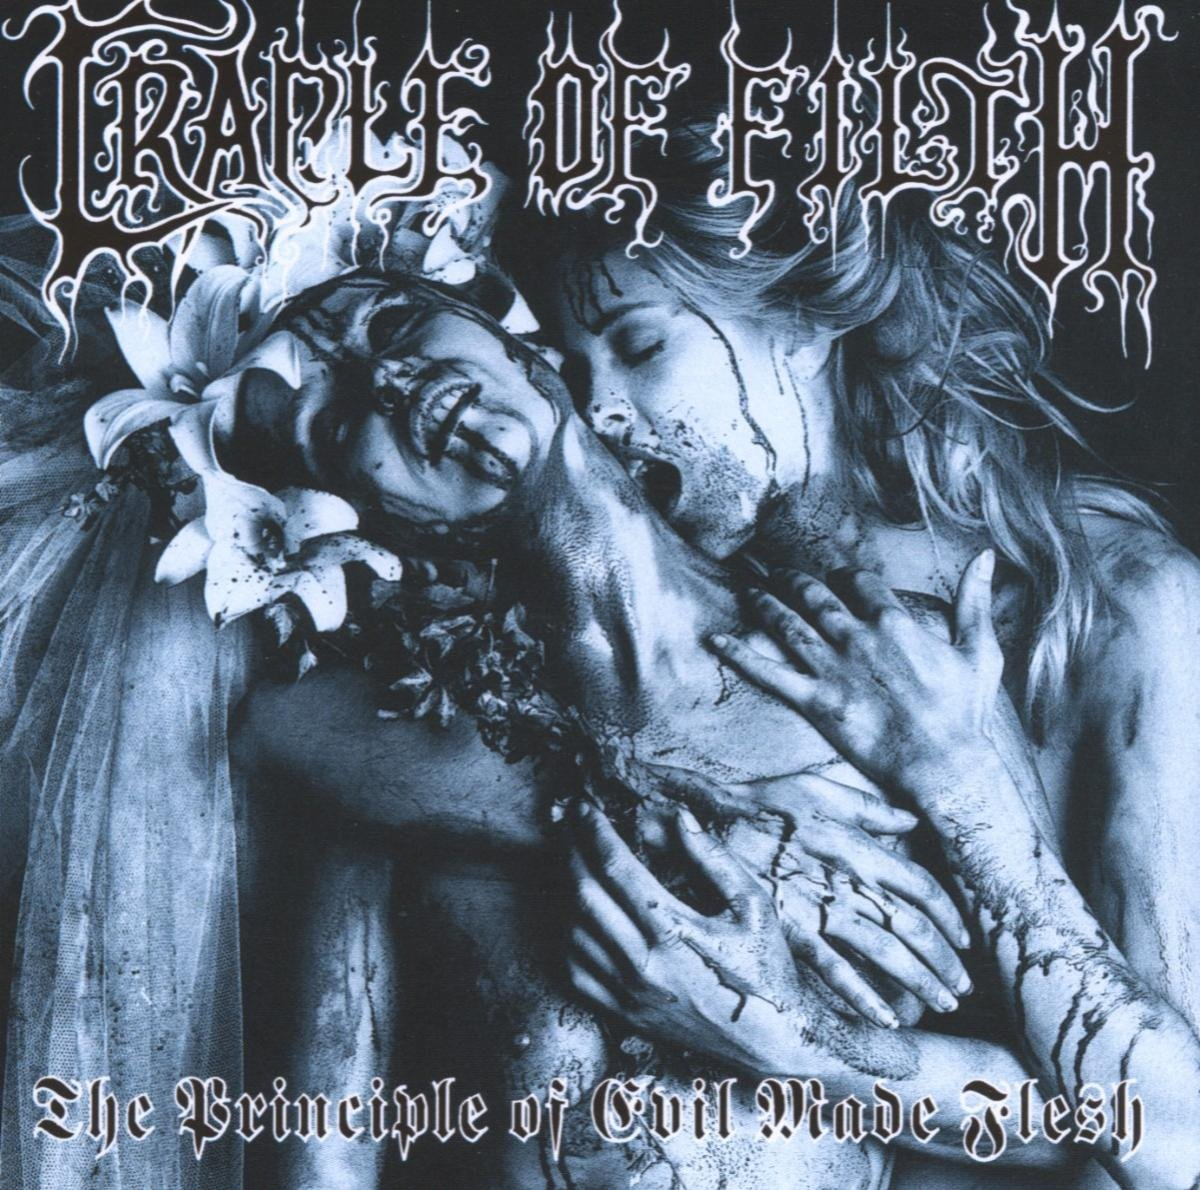 Principle Of Evil Made Flesh by CACOPHONOUS/ADA